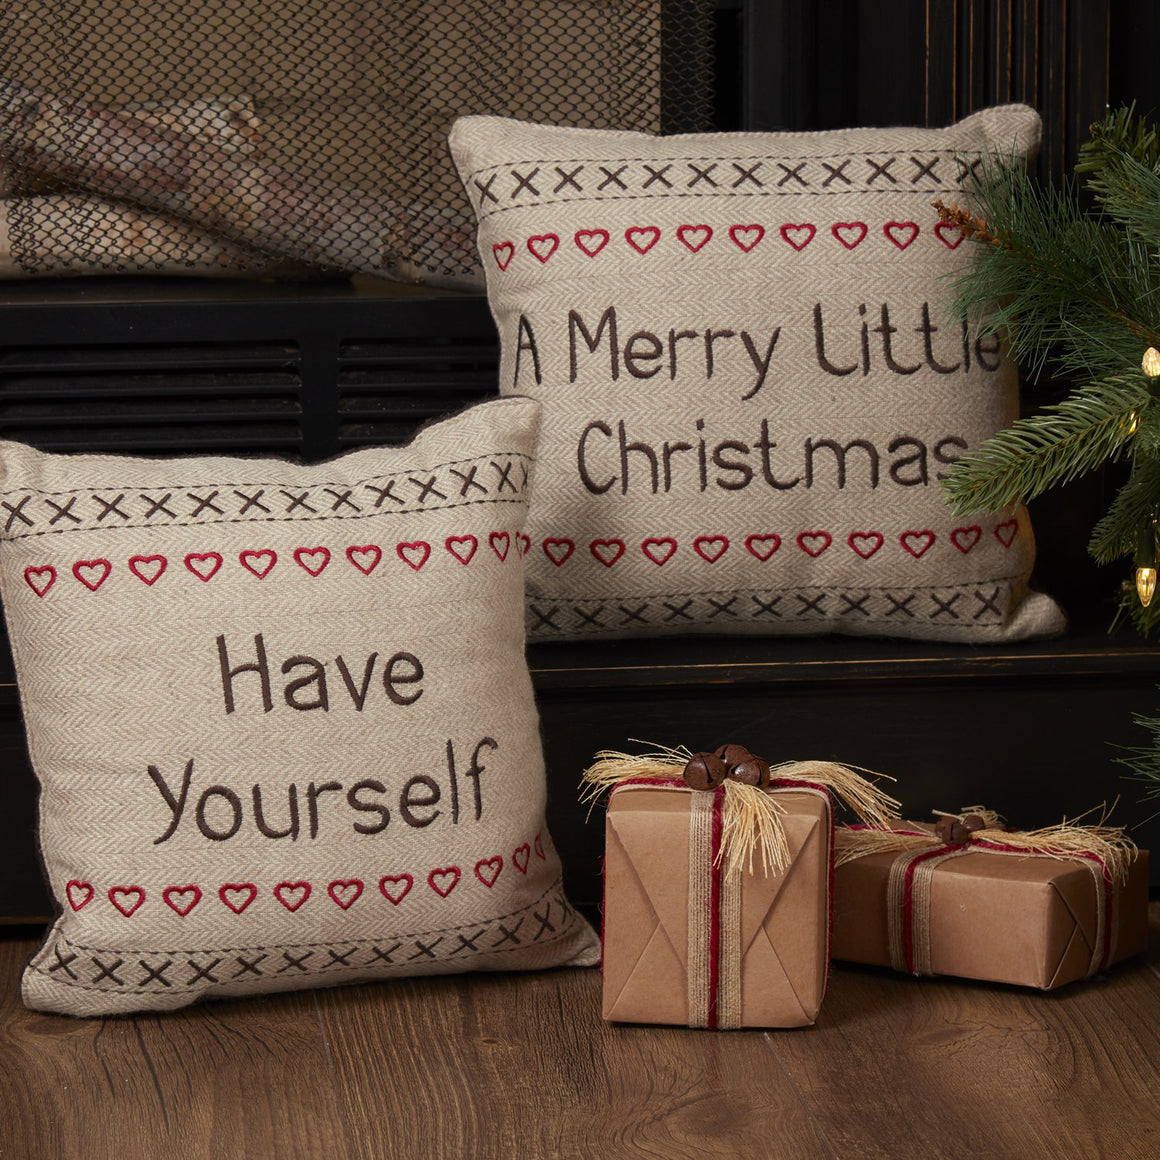 Merry Little Christmas Pillow Have Yourself A Set of 2 12x12